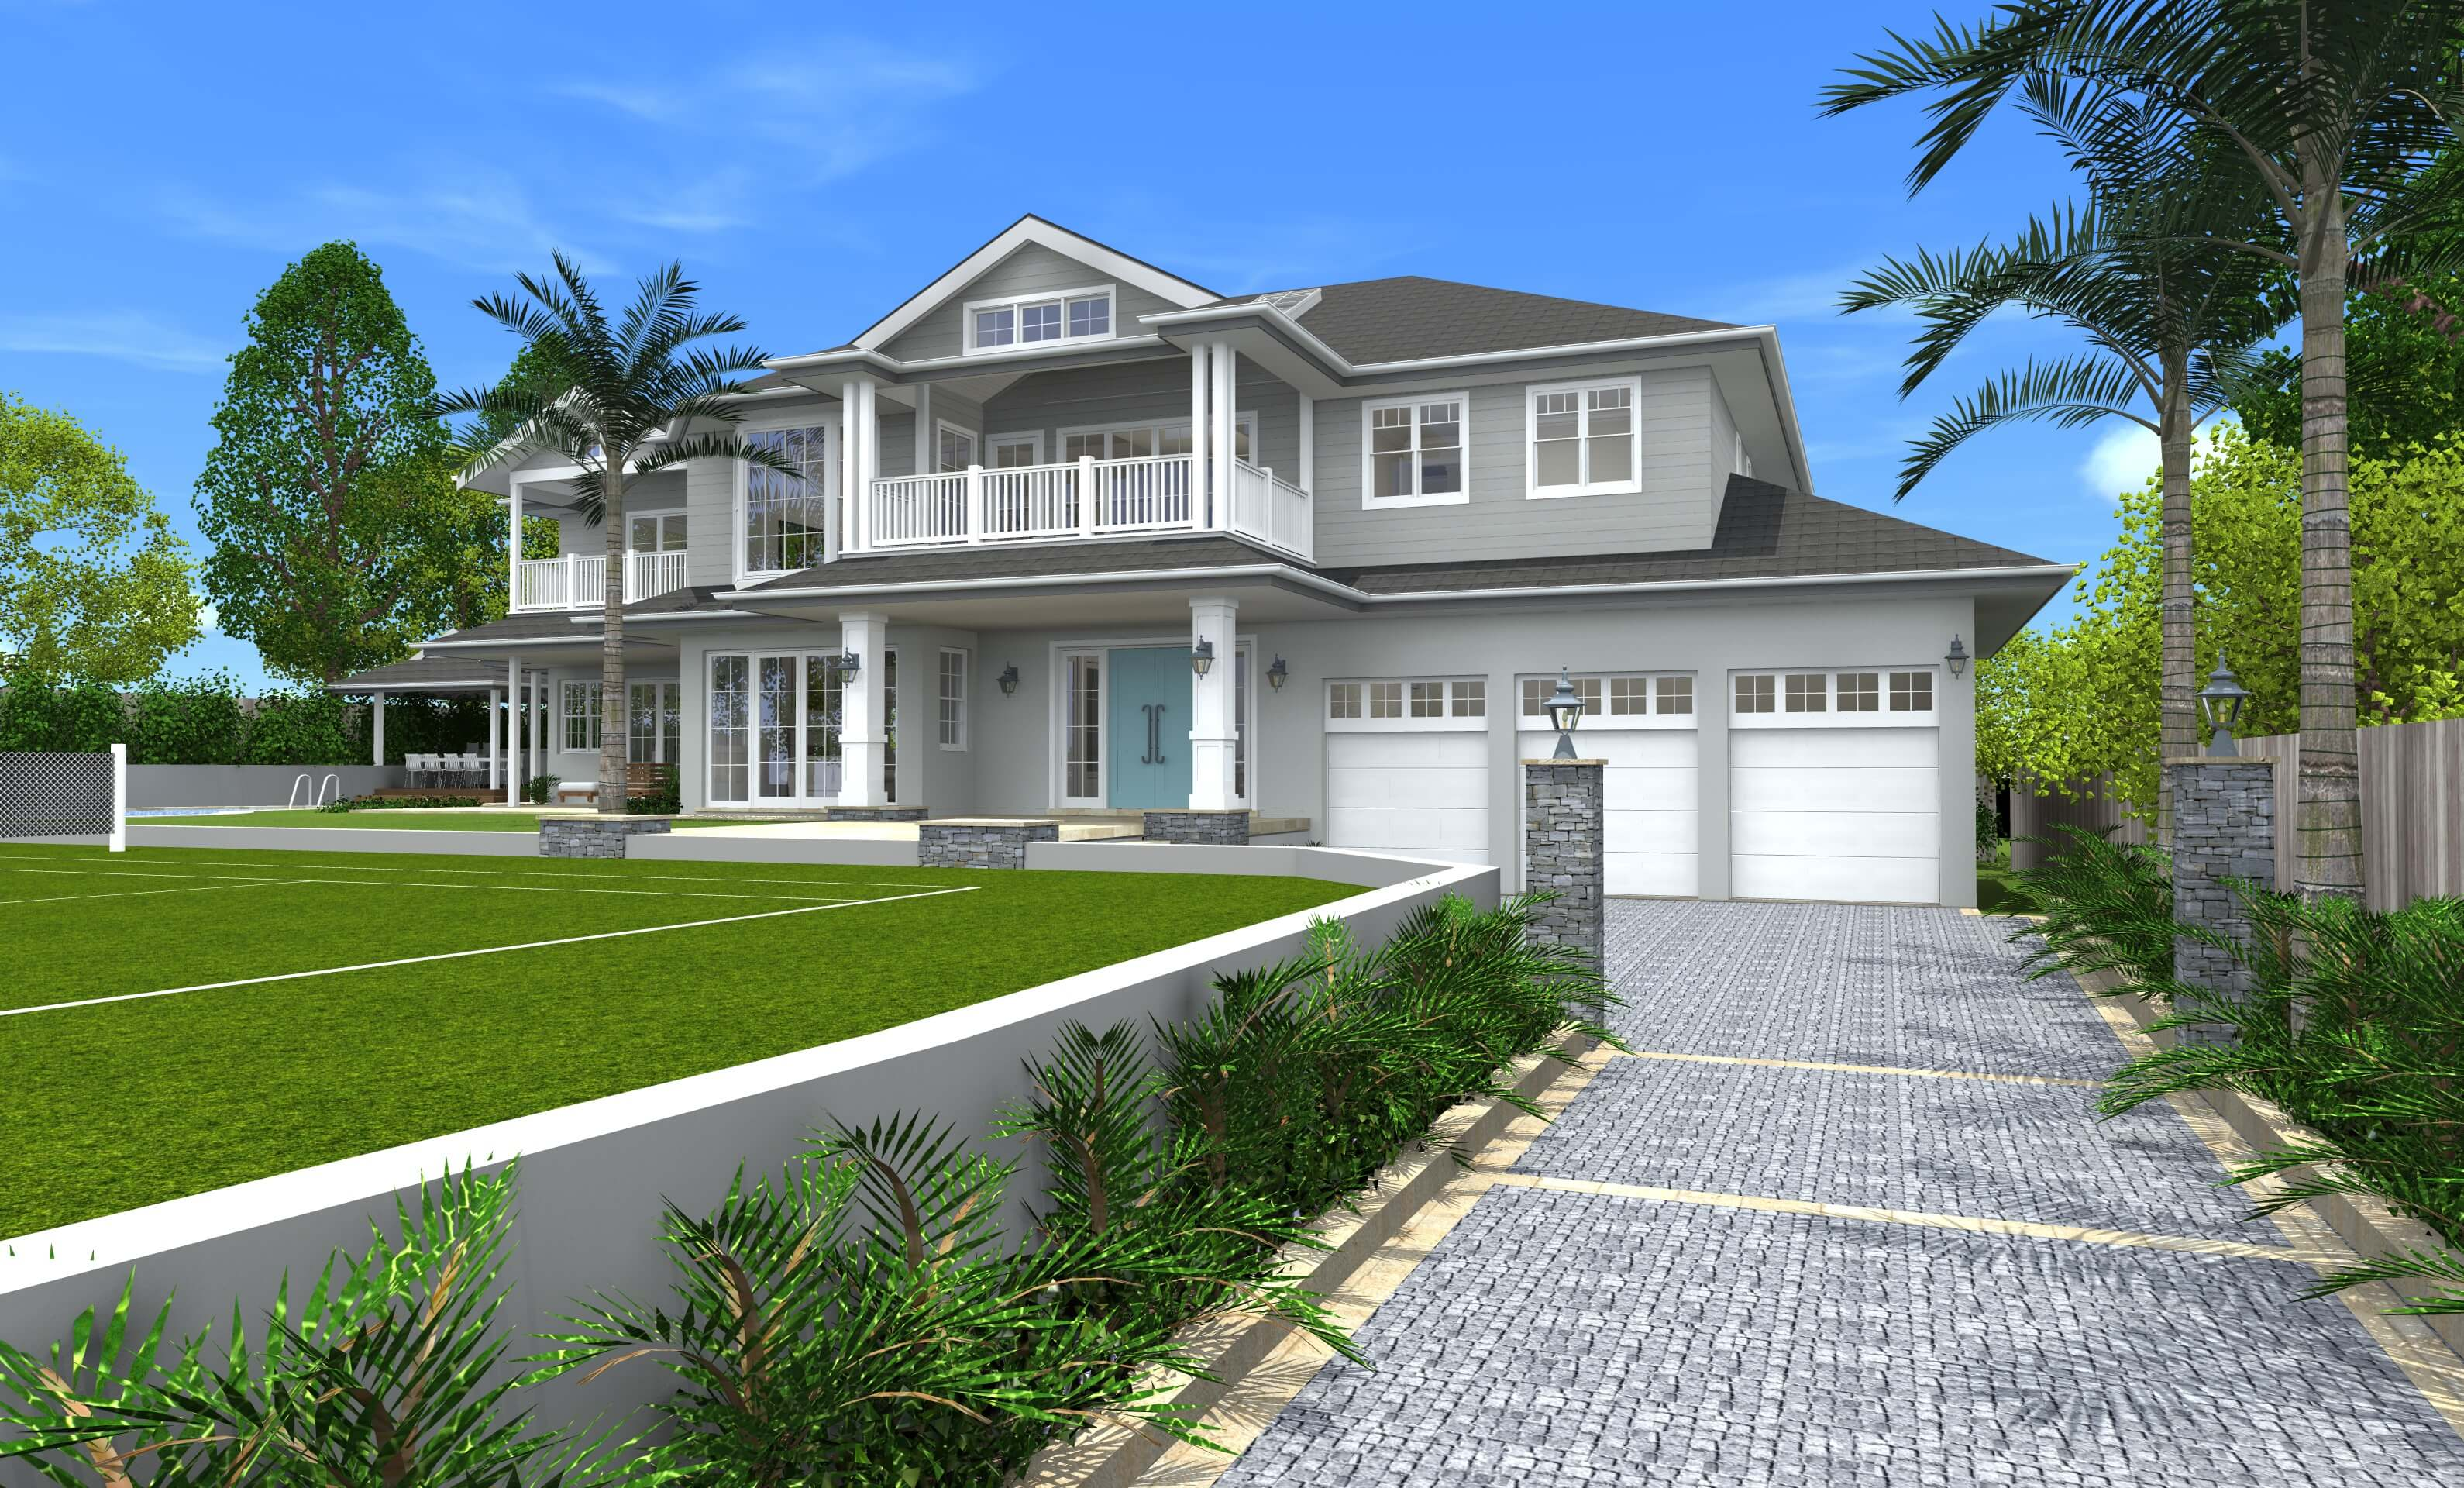 Architect design 3d concept hamptons style st ives for Hampton style homes